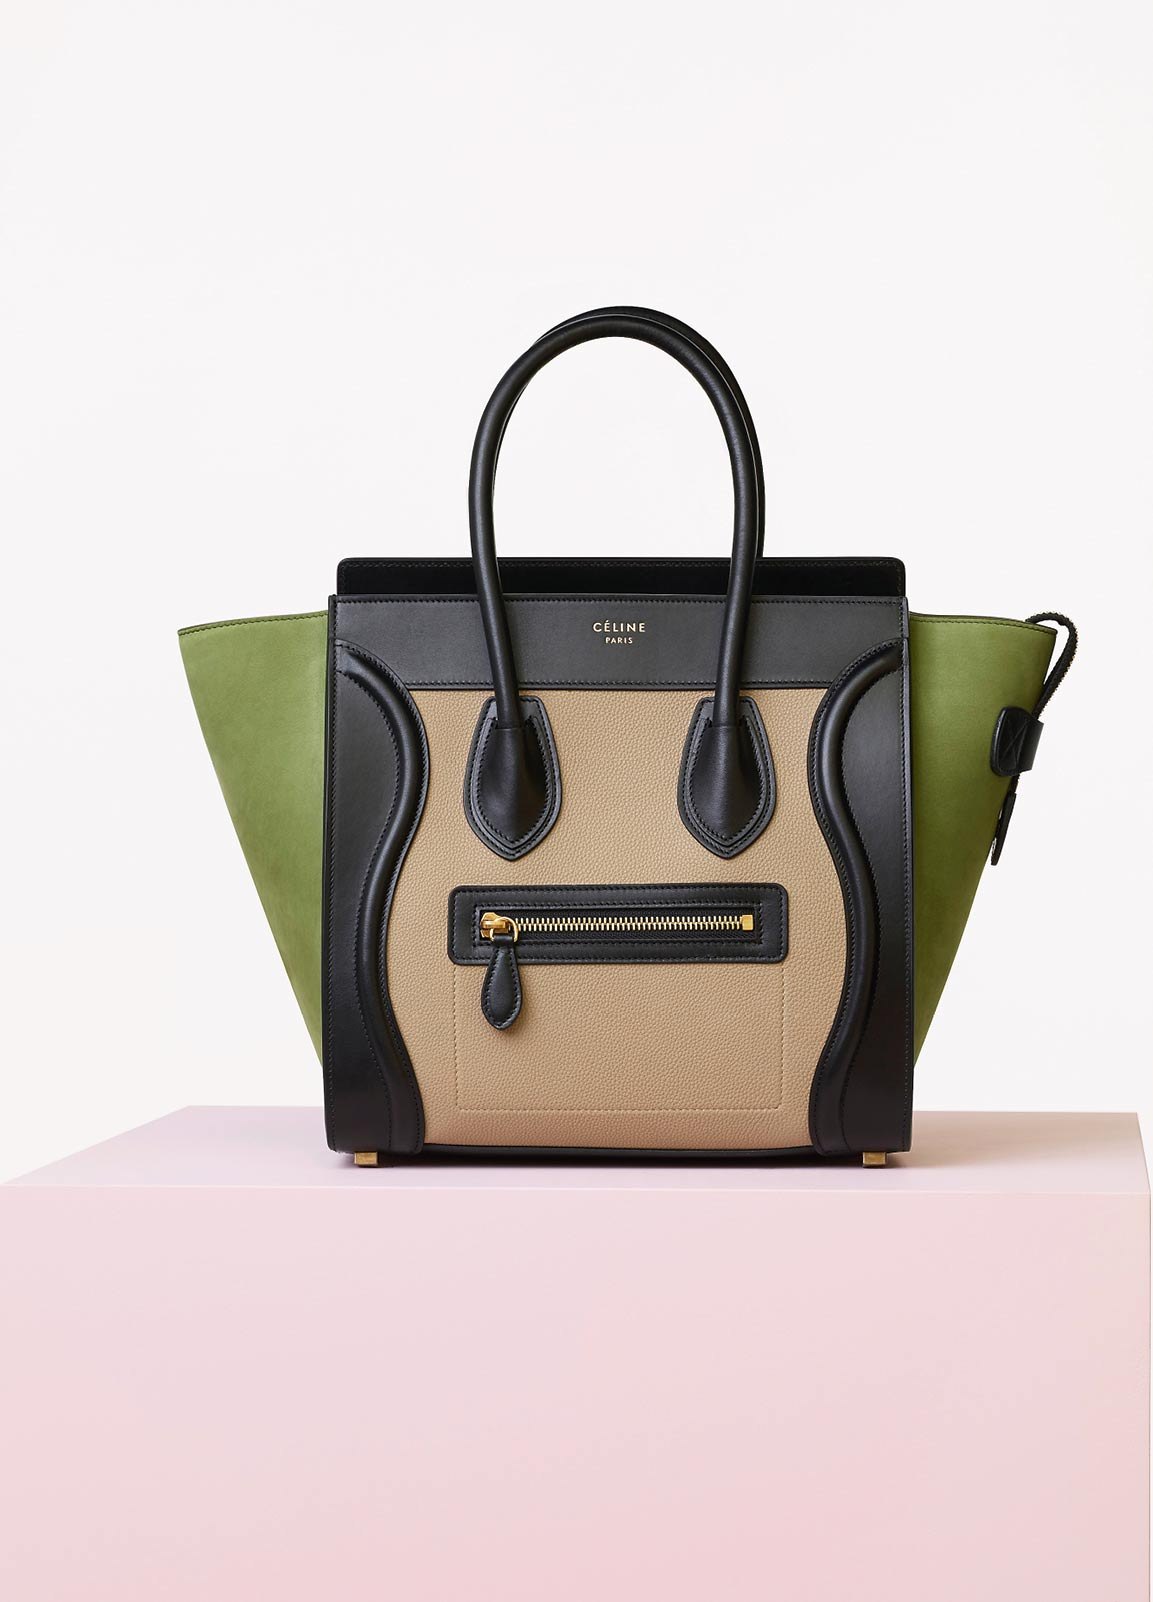 Celine Resort 2016 Bag Collection Featuring New Saddle Bags ...